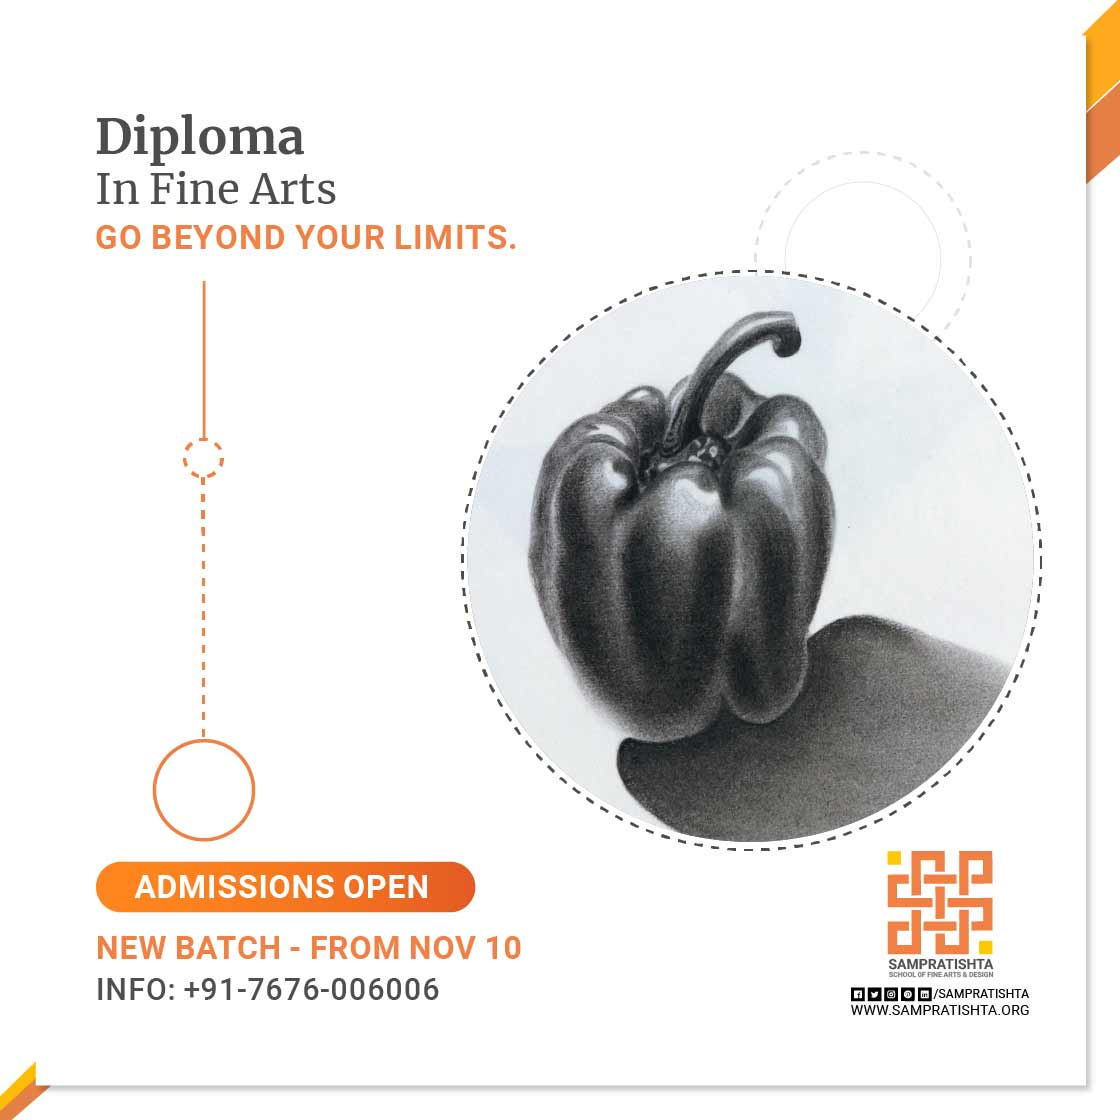 Diploma inf fine arts, Sampratishta school of fine arts, bangalore